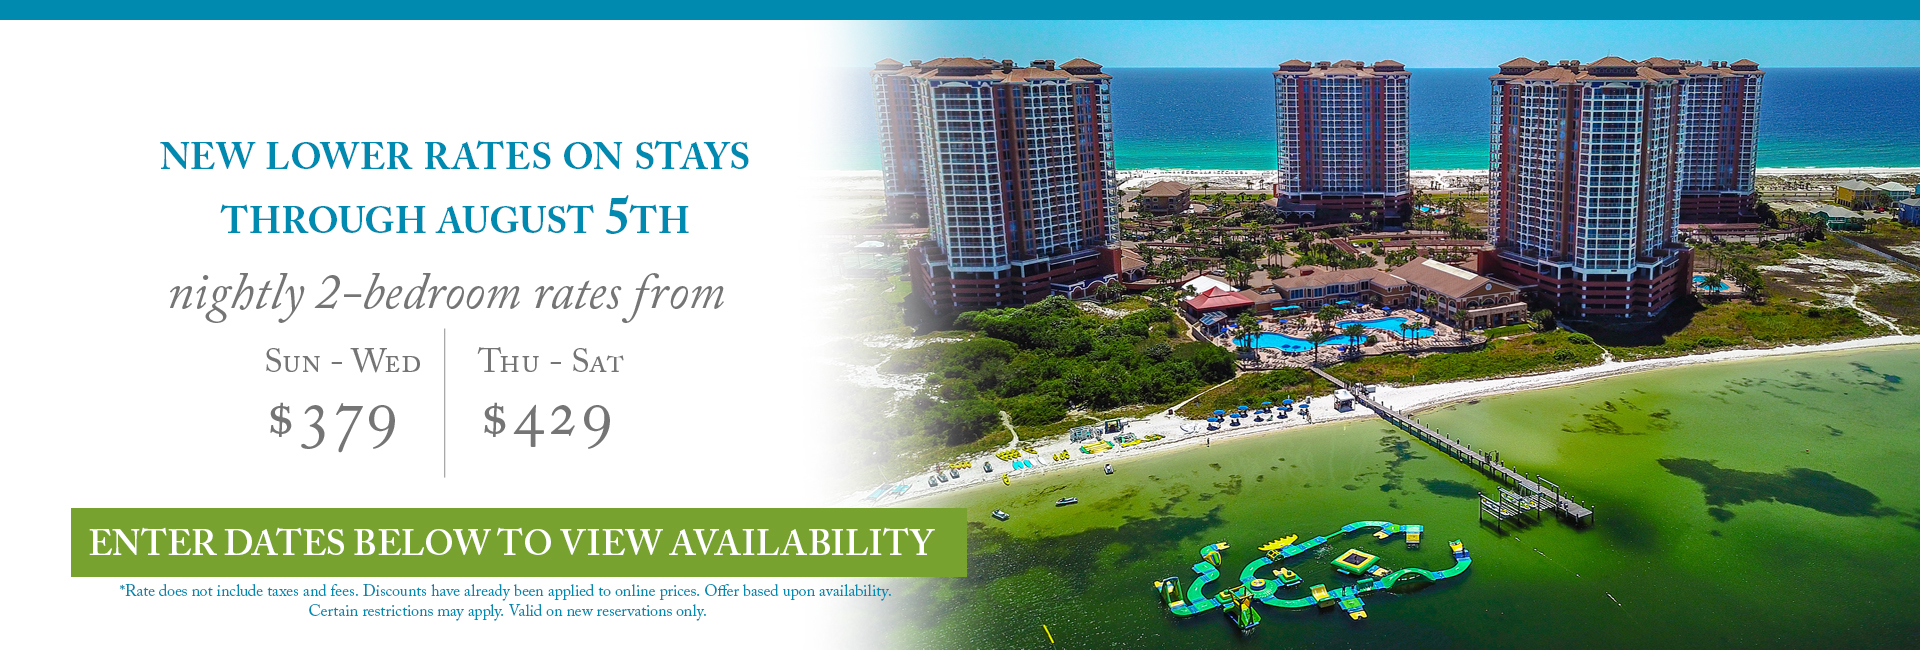 Special rates offer - Resort aerial view